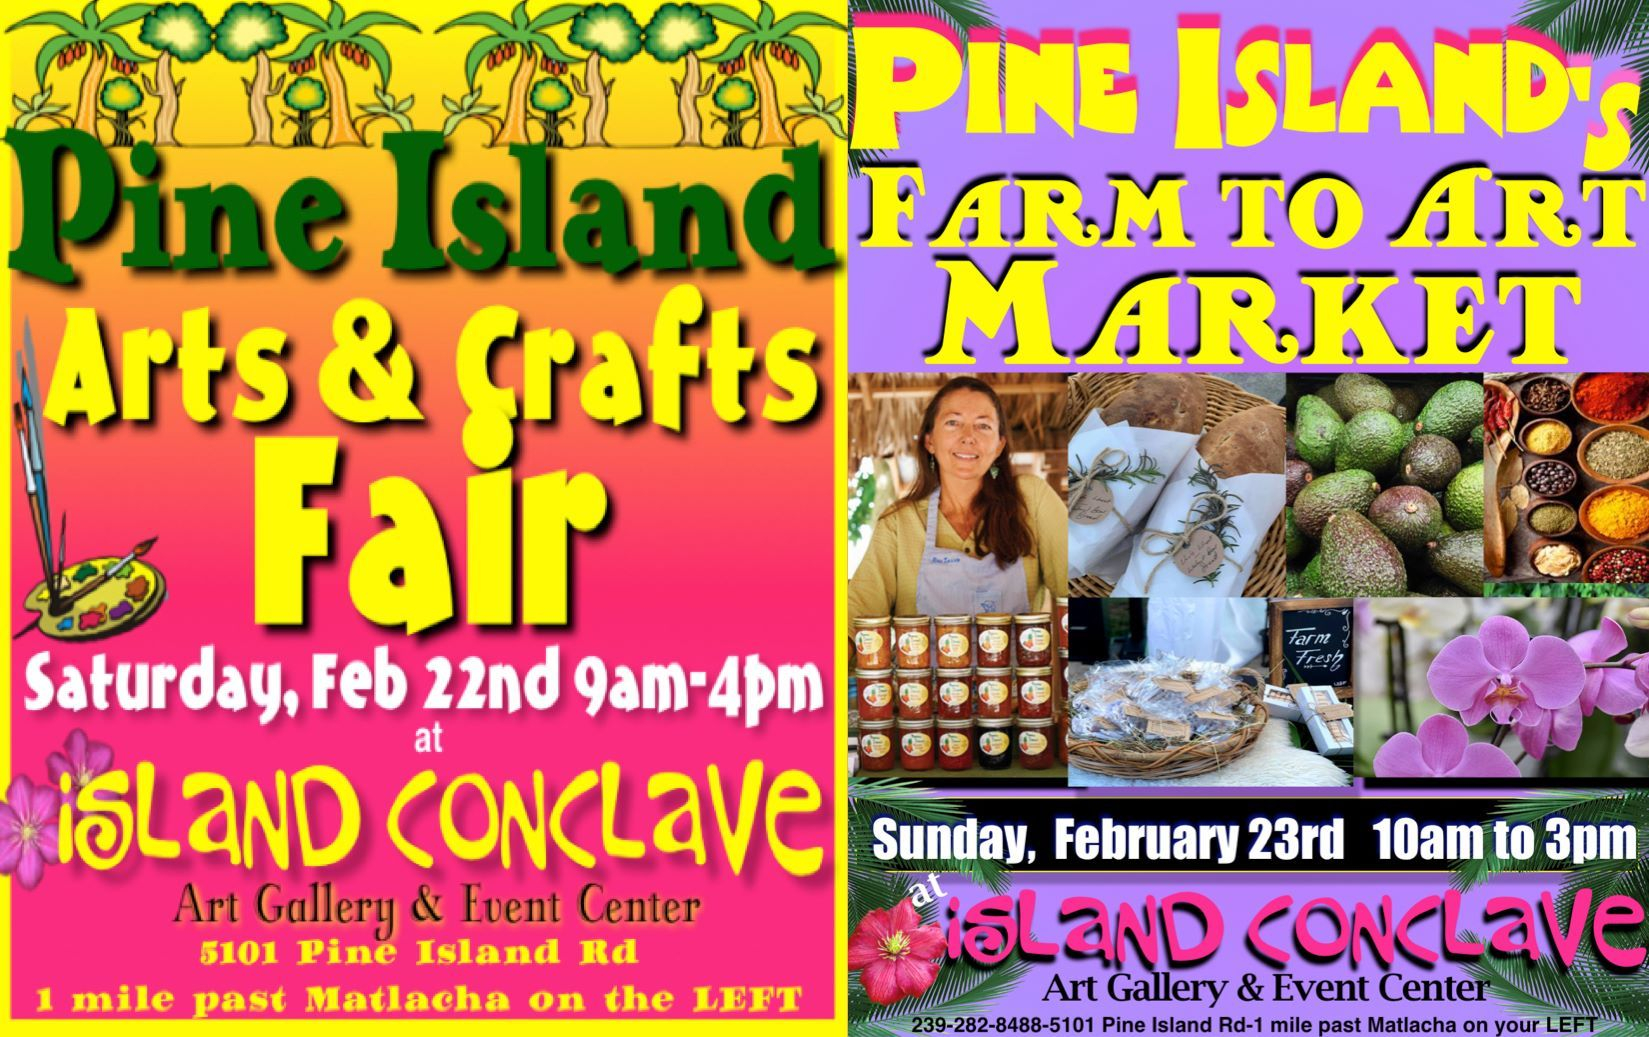 3 Events! Saturday Is The Pine Island Arts & Crafts Fair W Pertaining To South Florida Fairgrounds Event Schedule February 2020